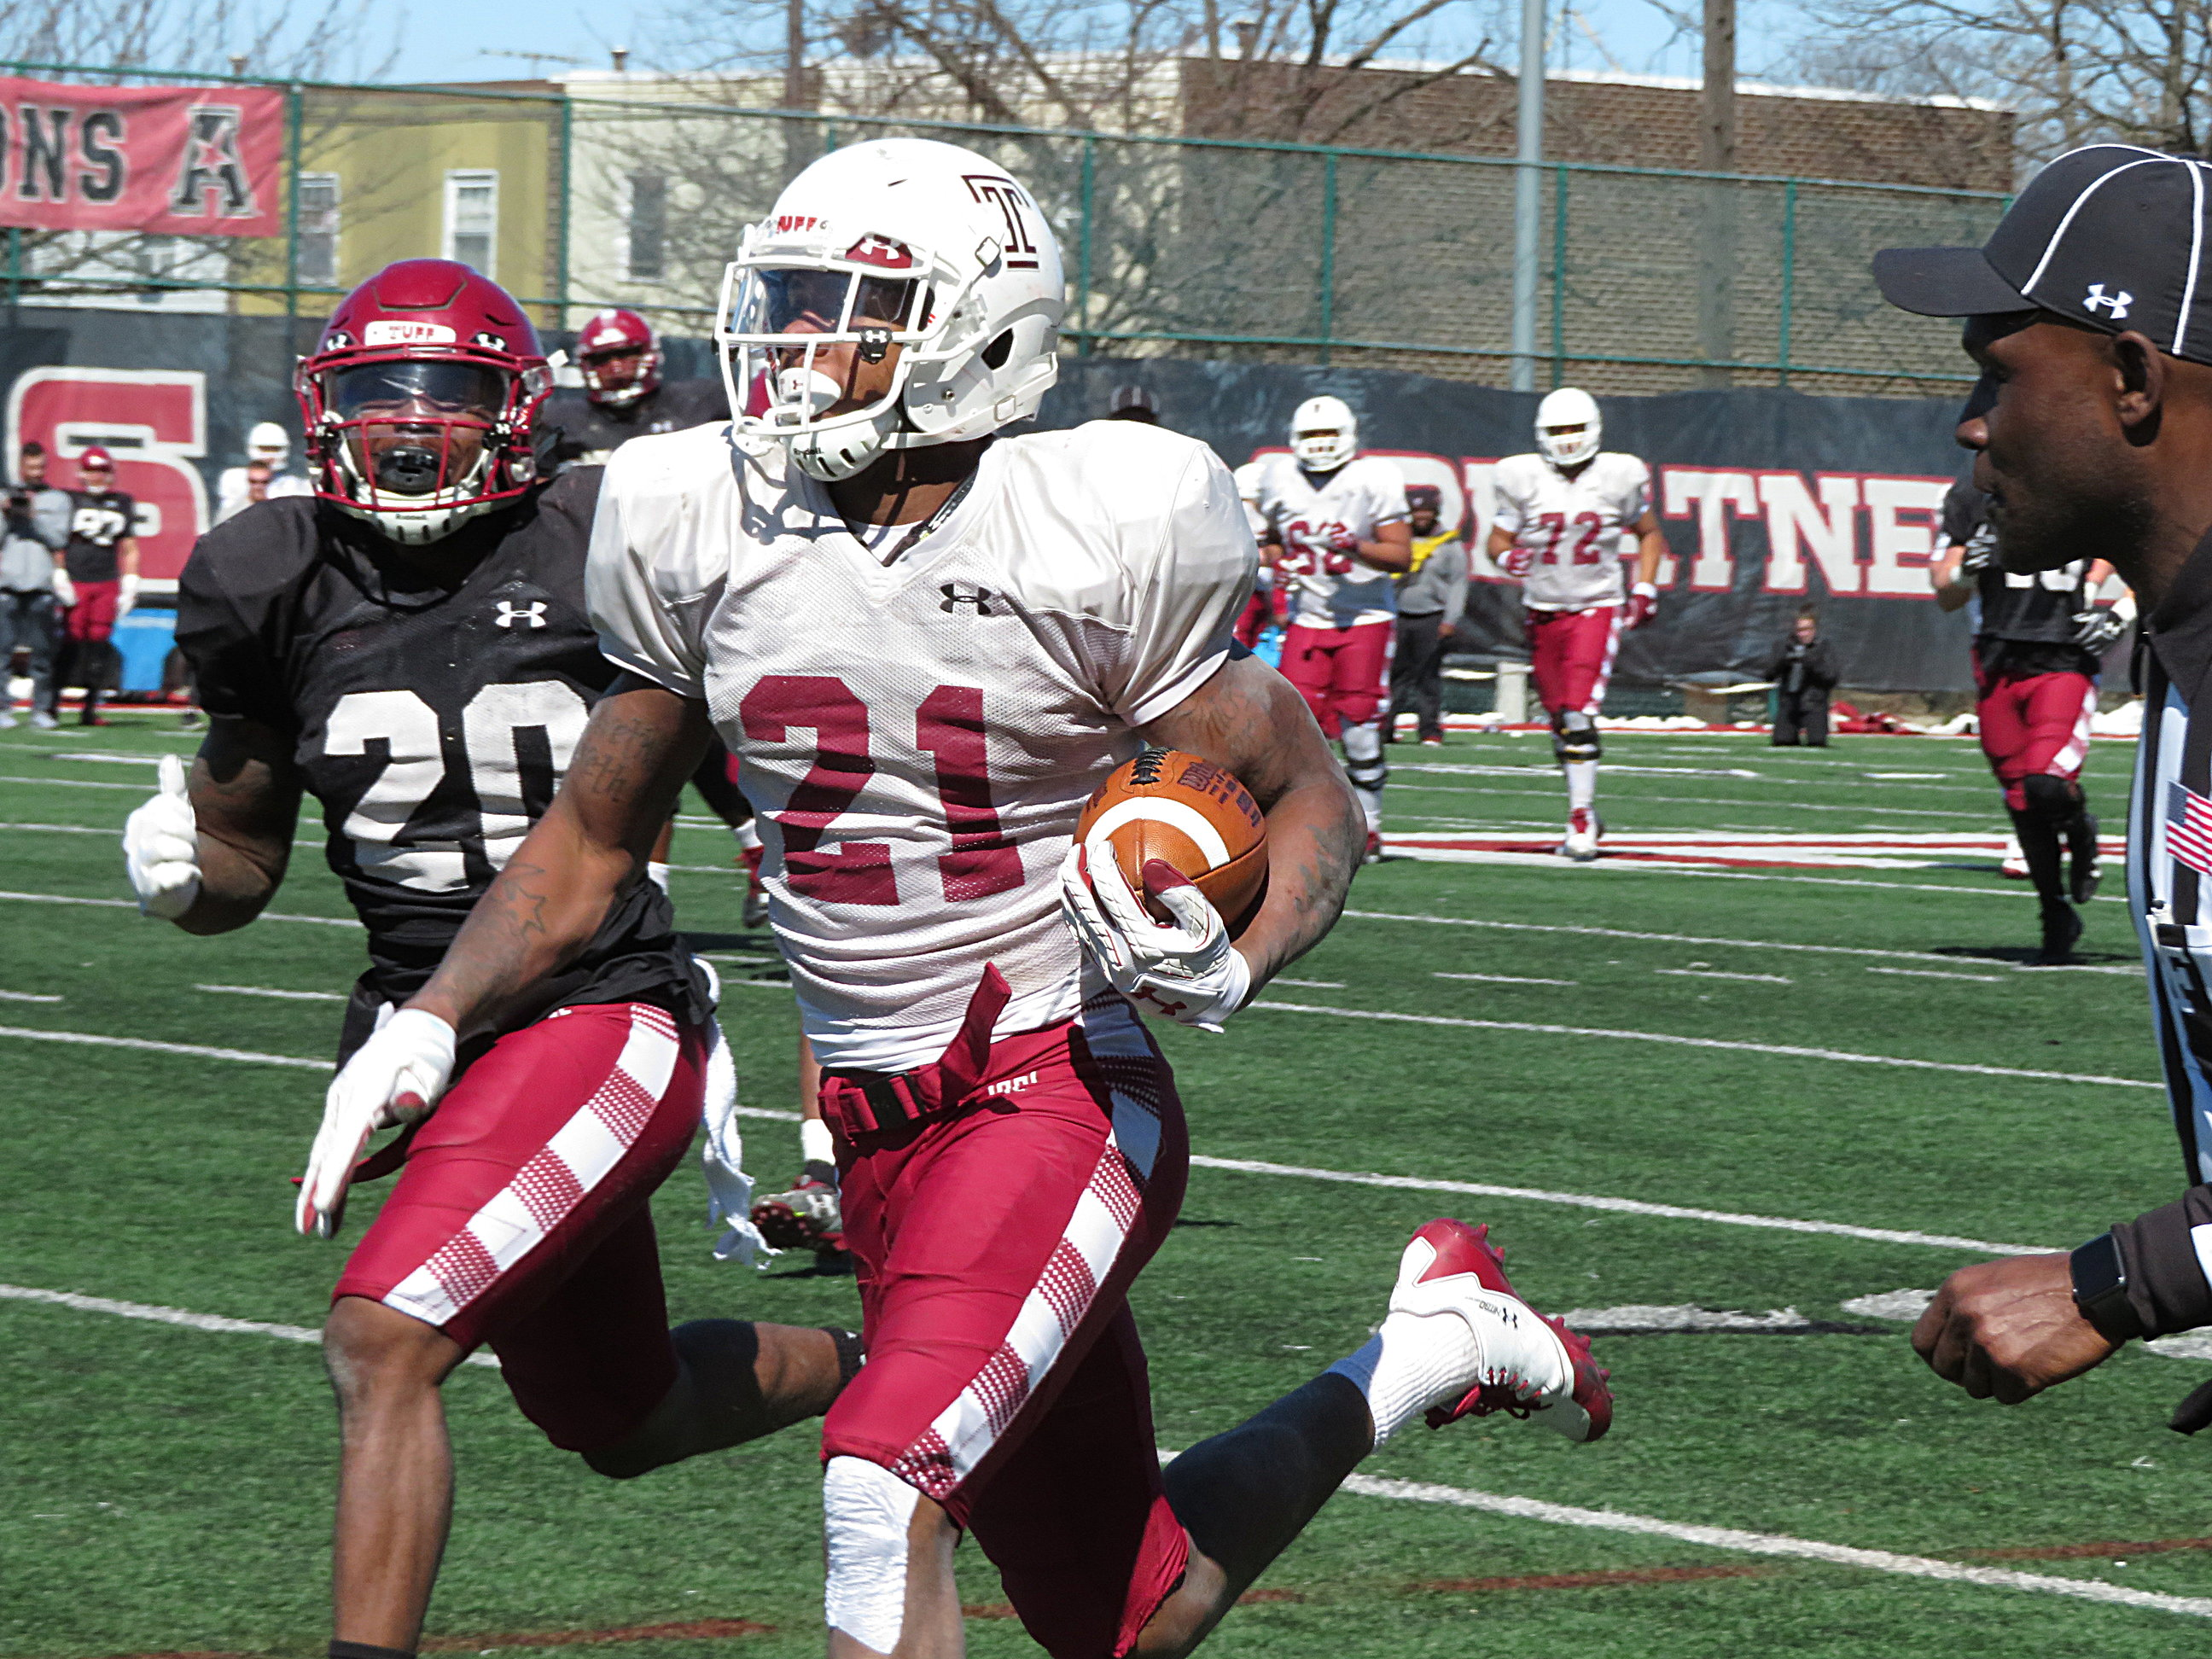 Temple´s Jager Gardner on the end of a long TD reception in Saturday´s practice. He has made a strong return from injury.